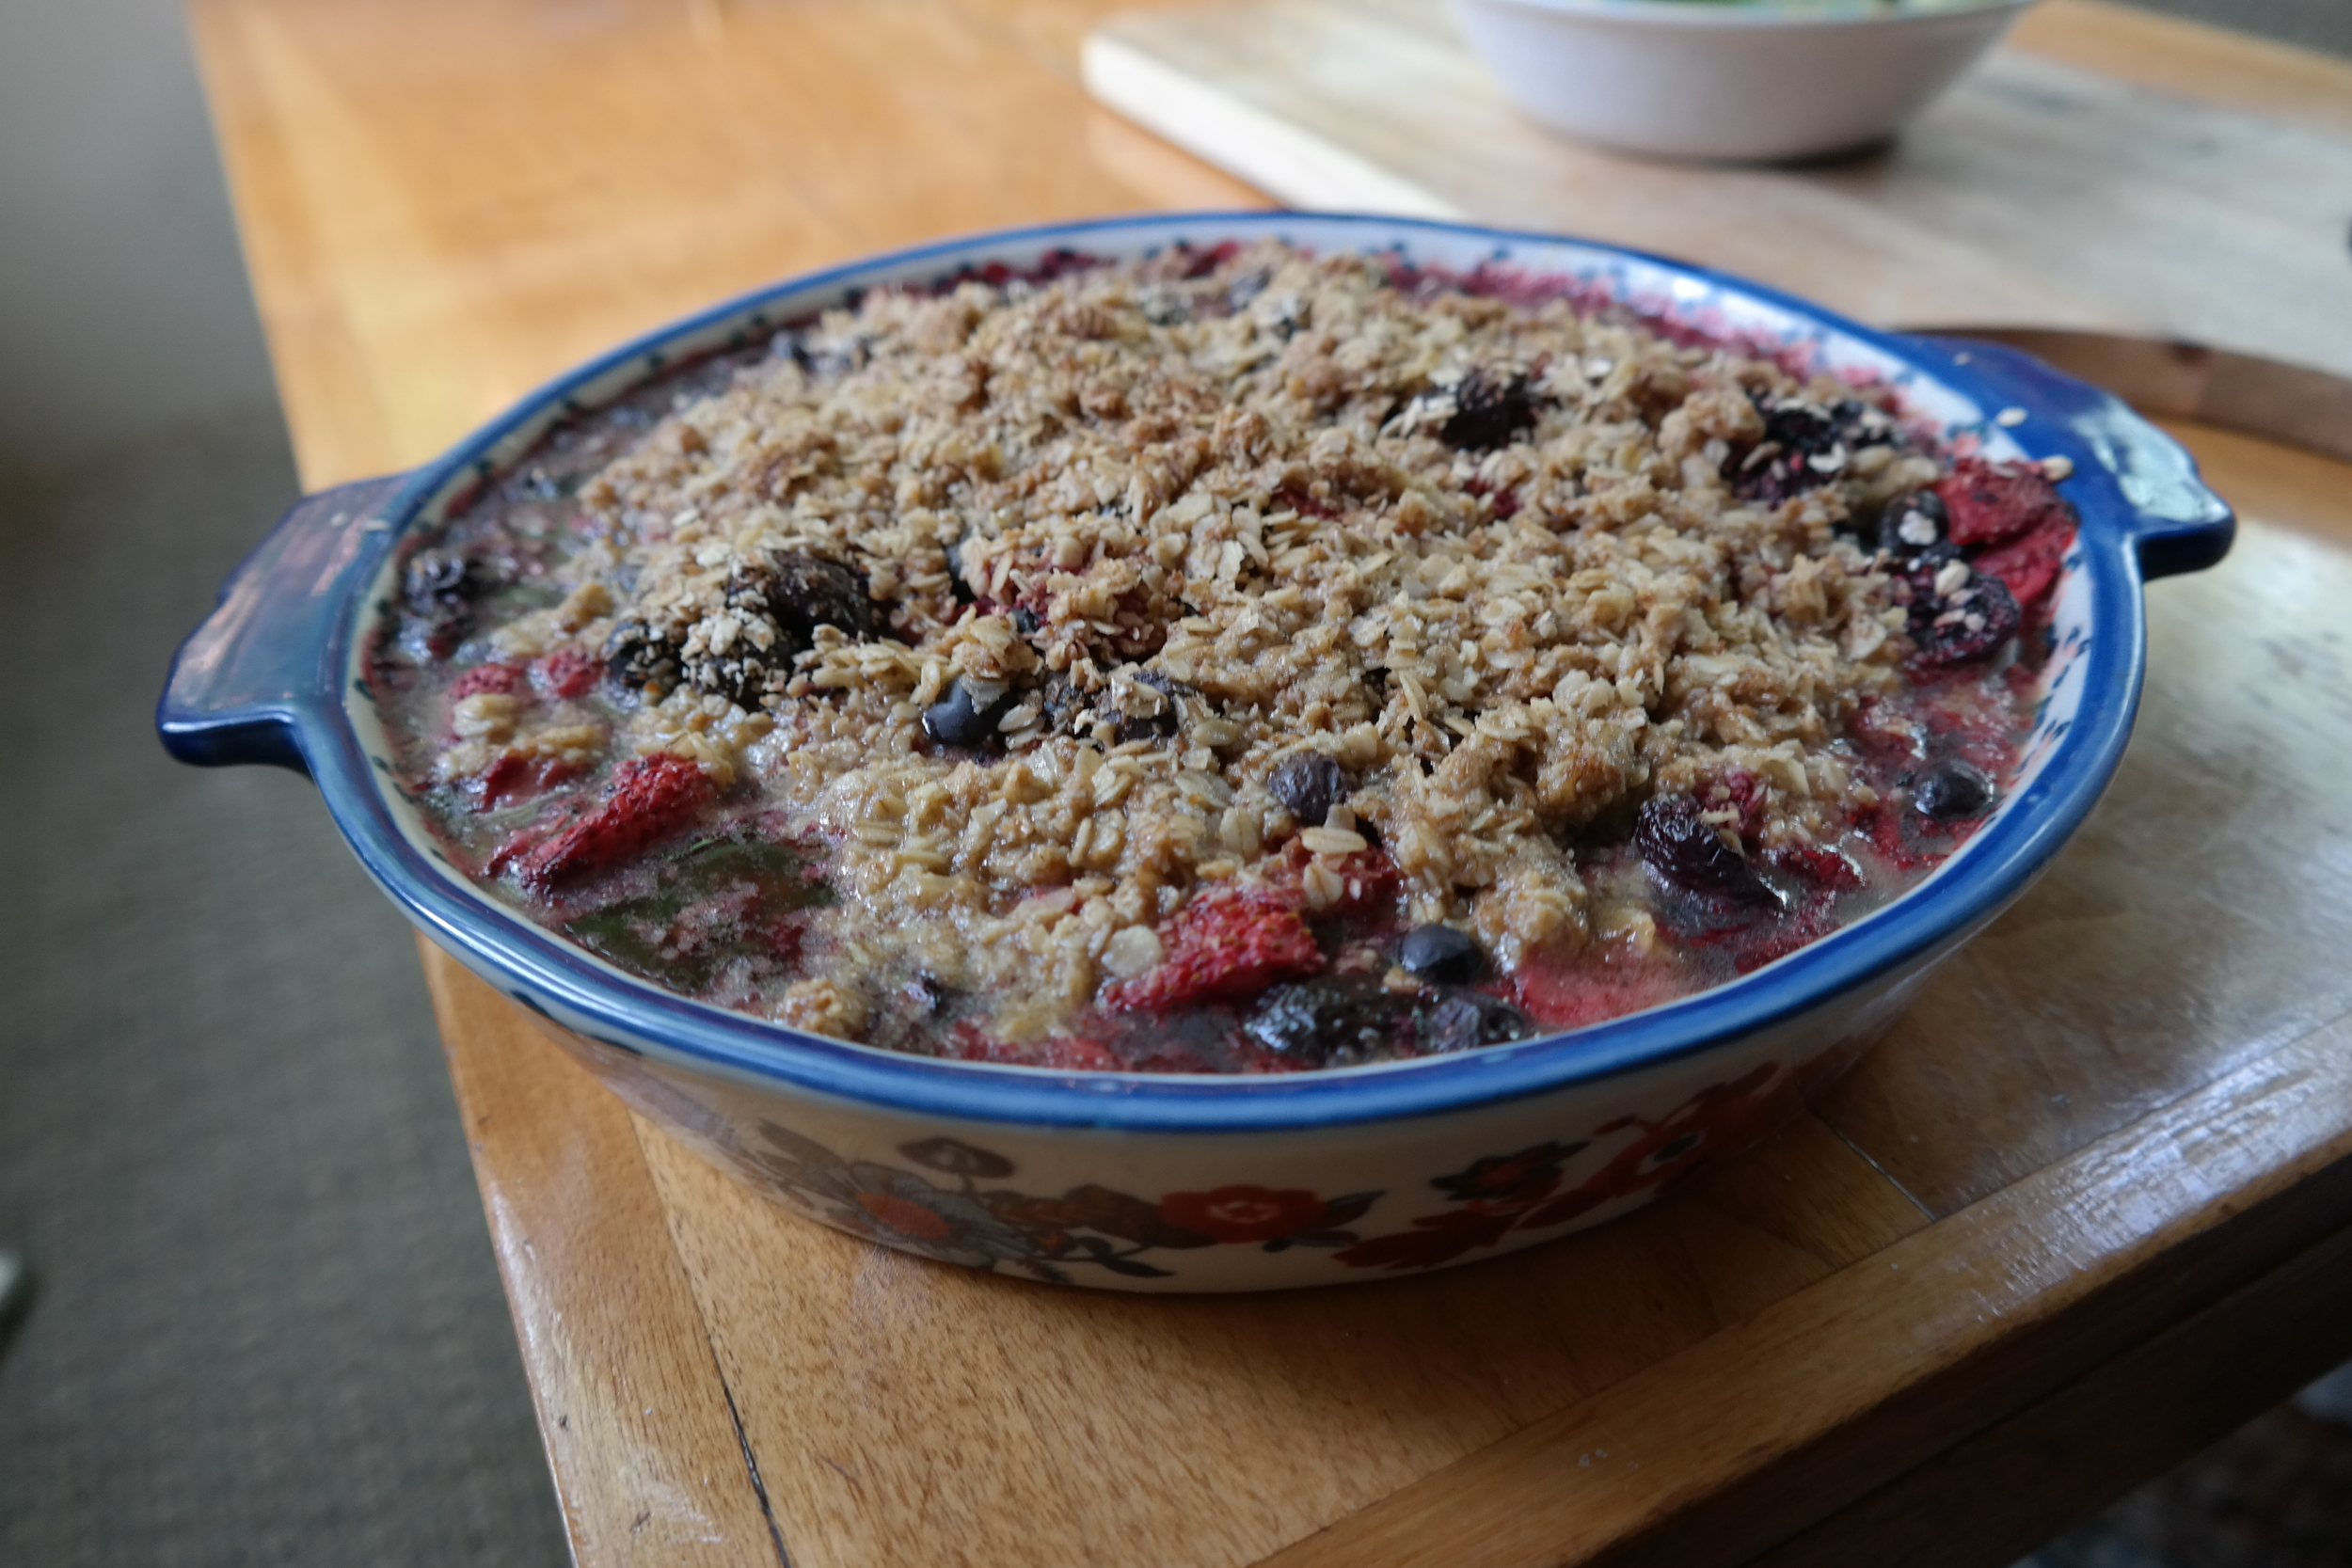 Simple Summer Berry Cobbler, hot or cold this is the perfect summer treat